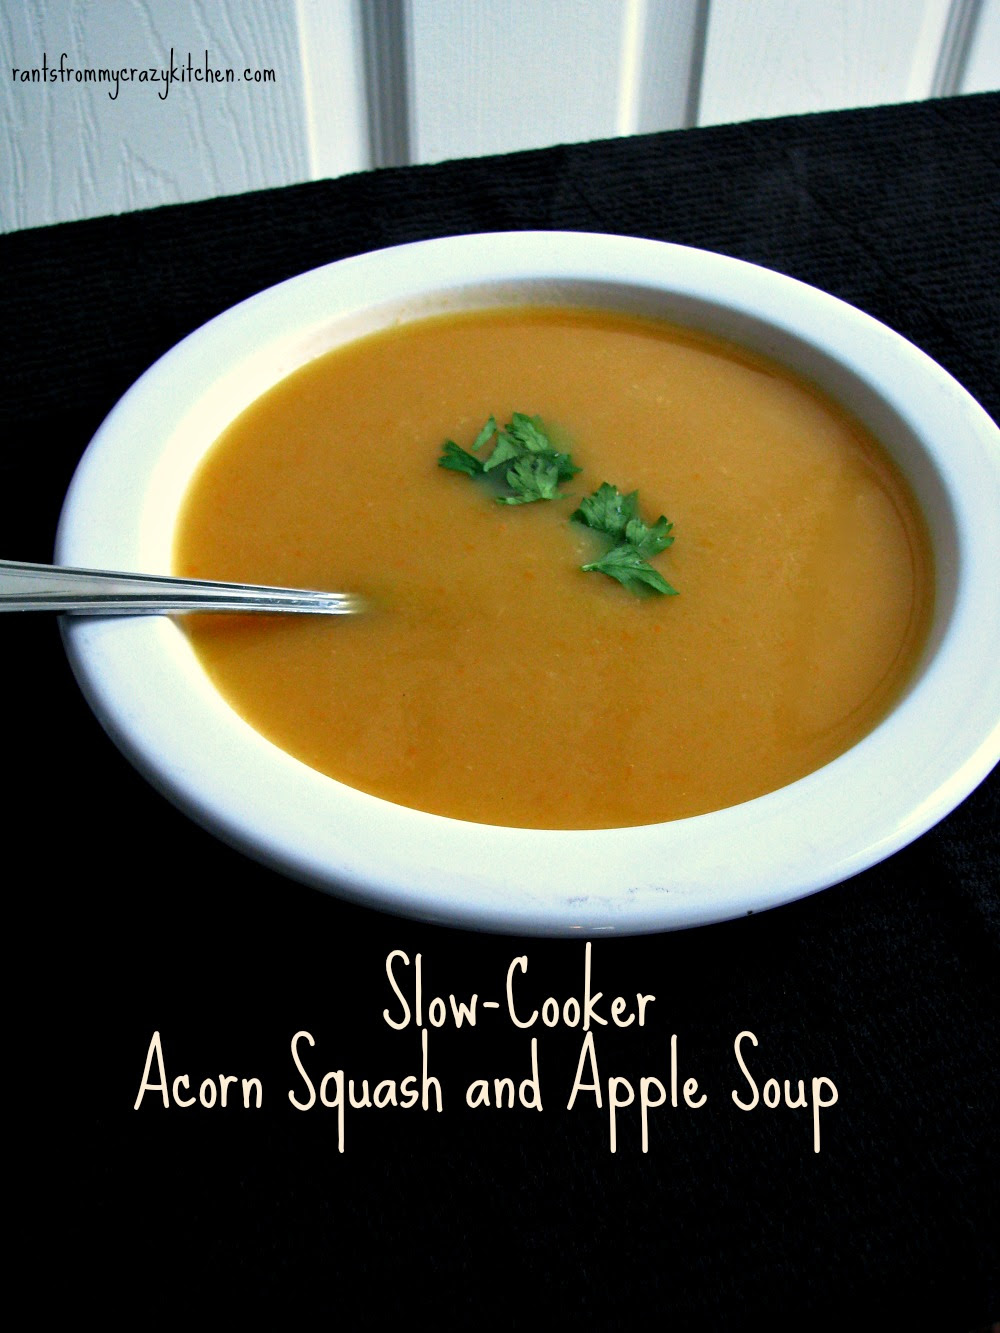 Perfect Fall Soup Recipe Roundup Slow Cooker Acorn Squash Apple Soup